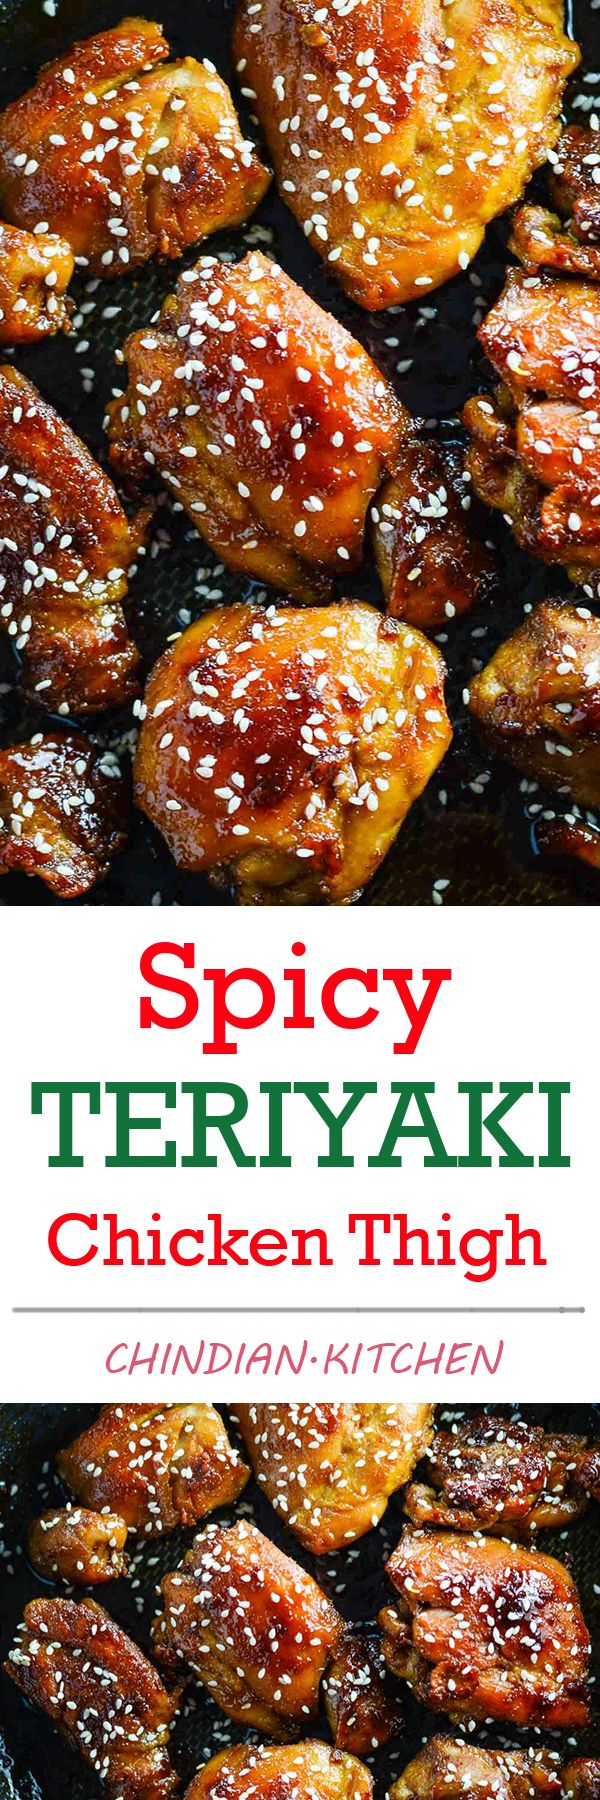 Easy pan fried teriyaki chicken recipe | Food fox recipes